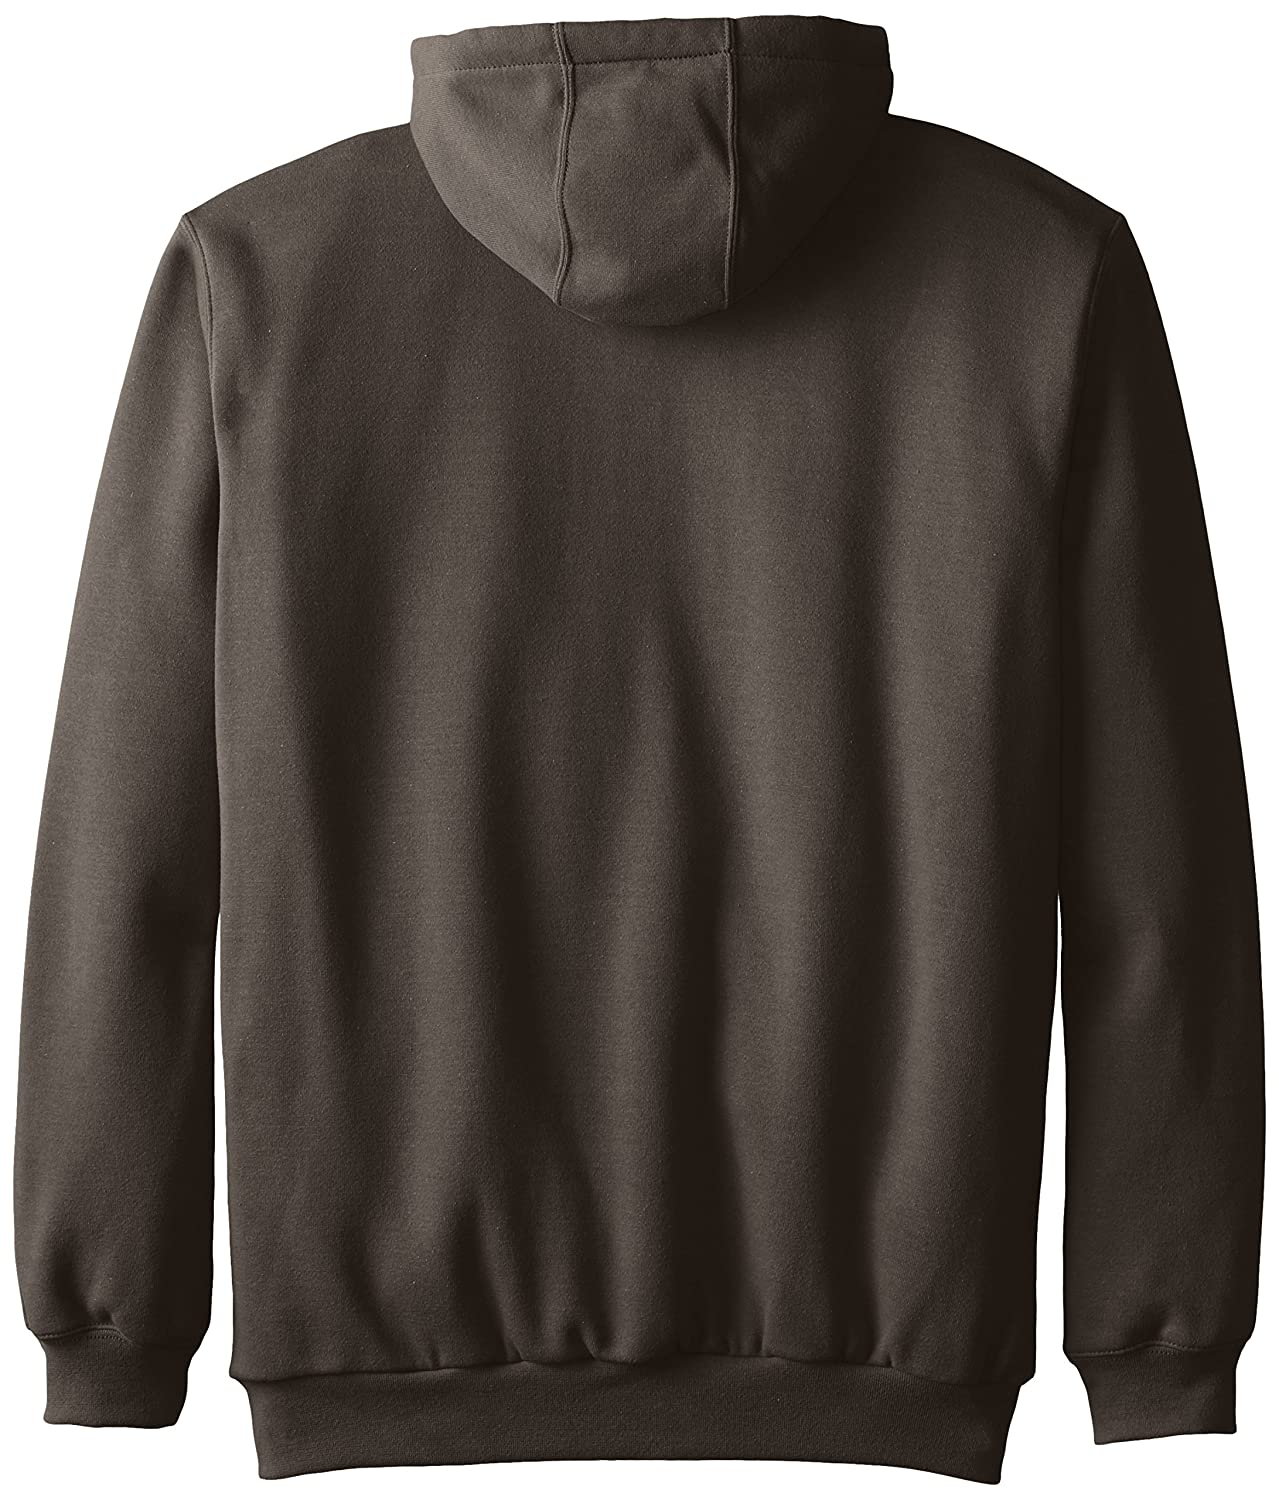 Carhartt Mens Big /& Tall Rutland Thermal Lined Zip Front Sweatshirt Hoodie